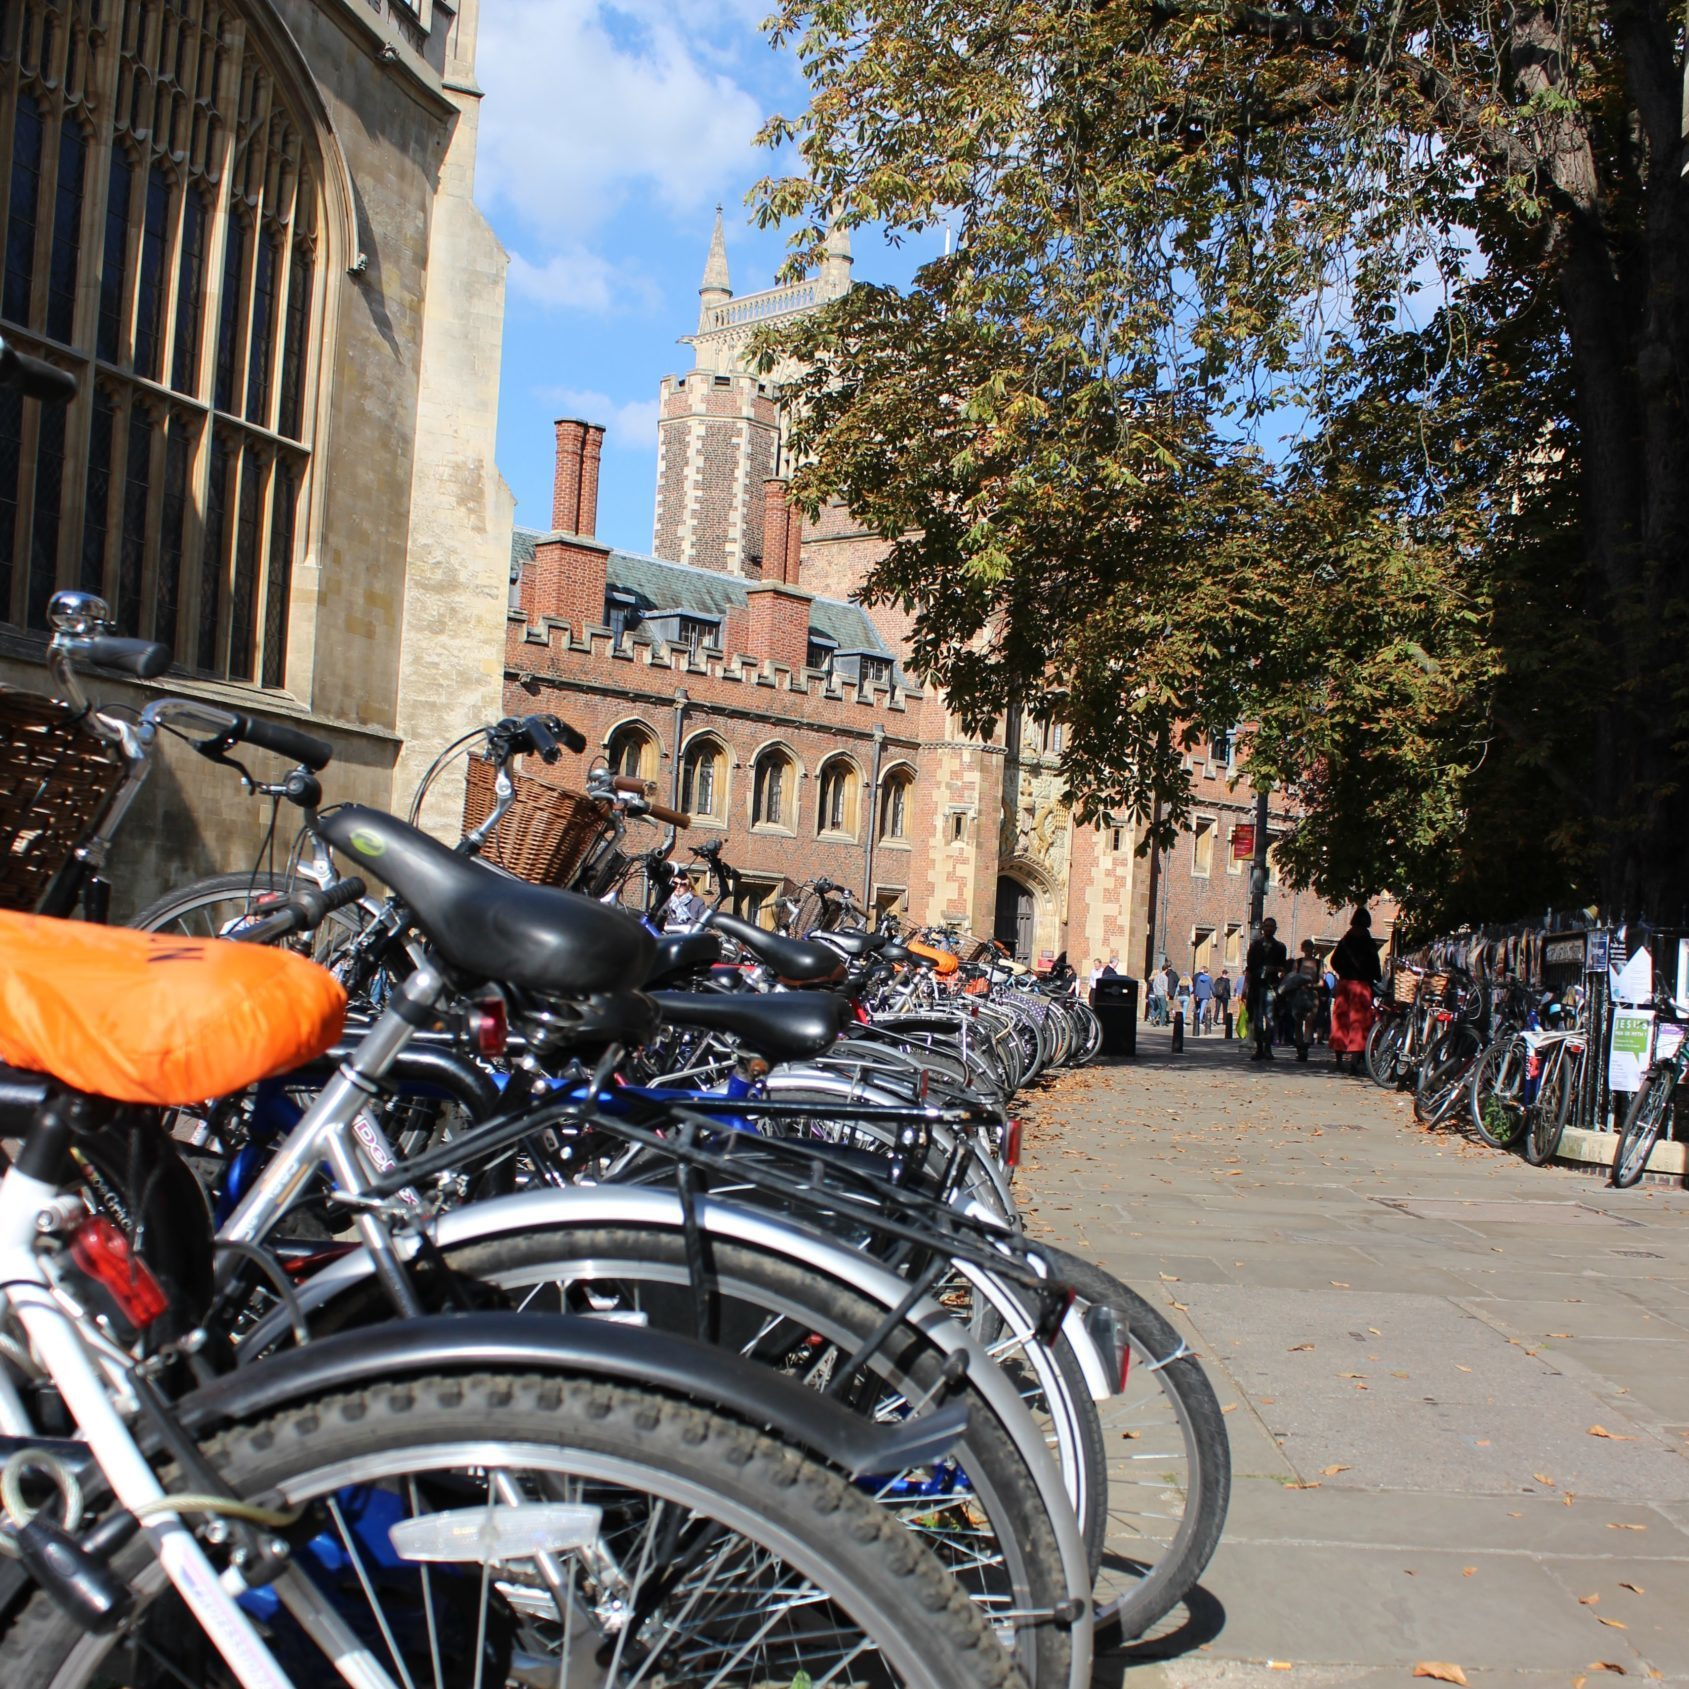 Travel tips for visiting Cambridge